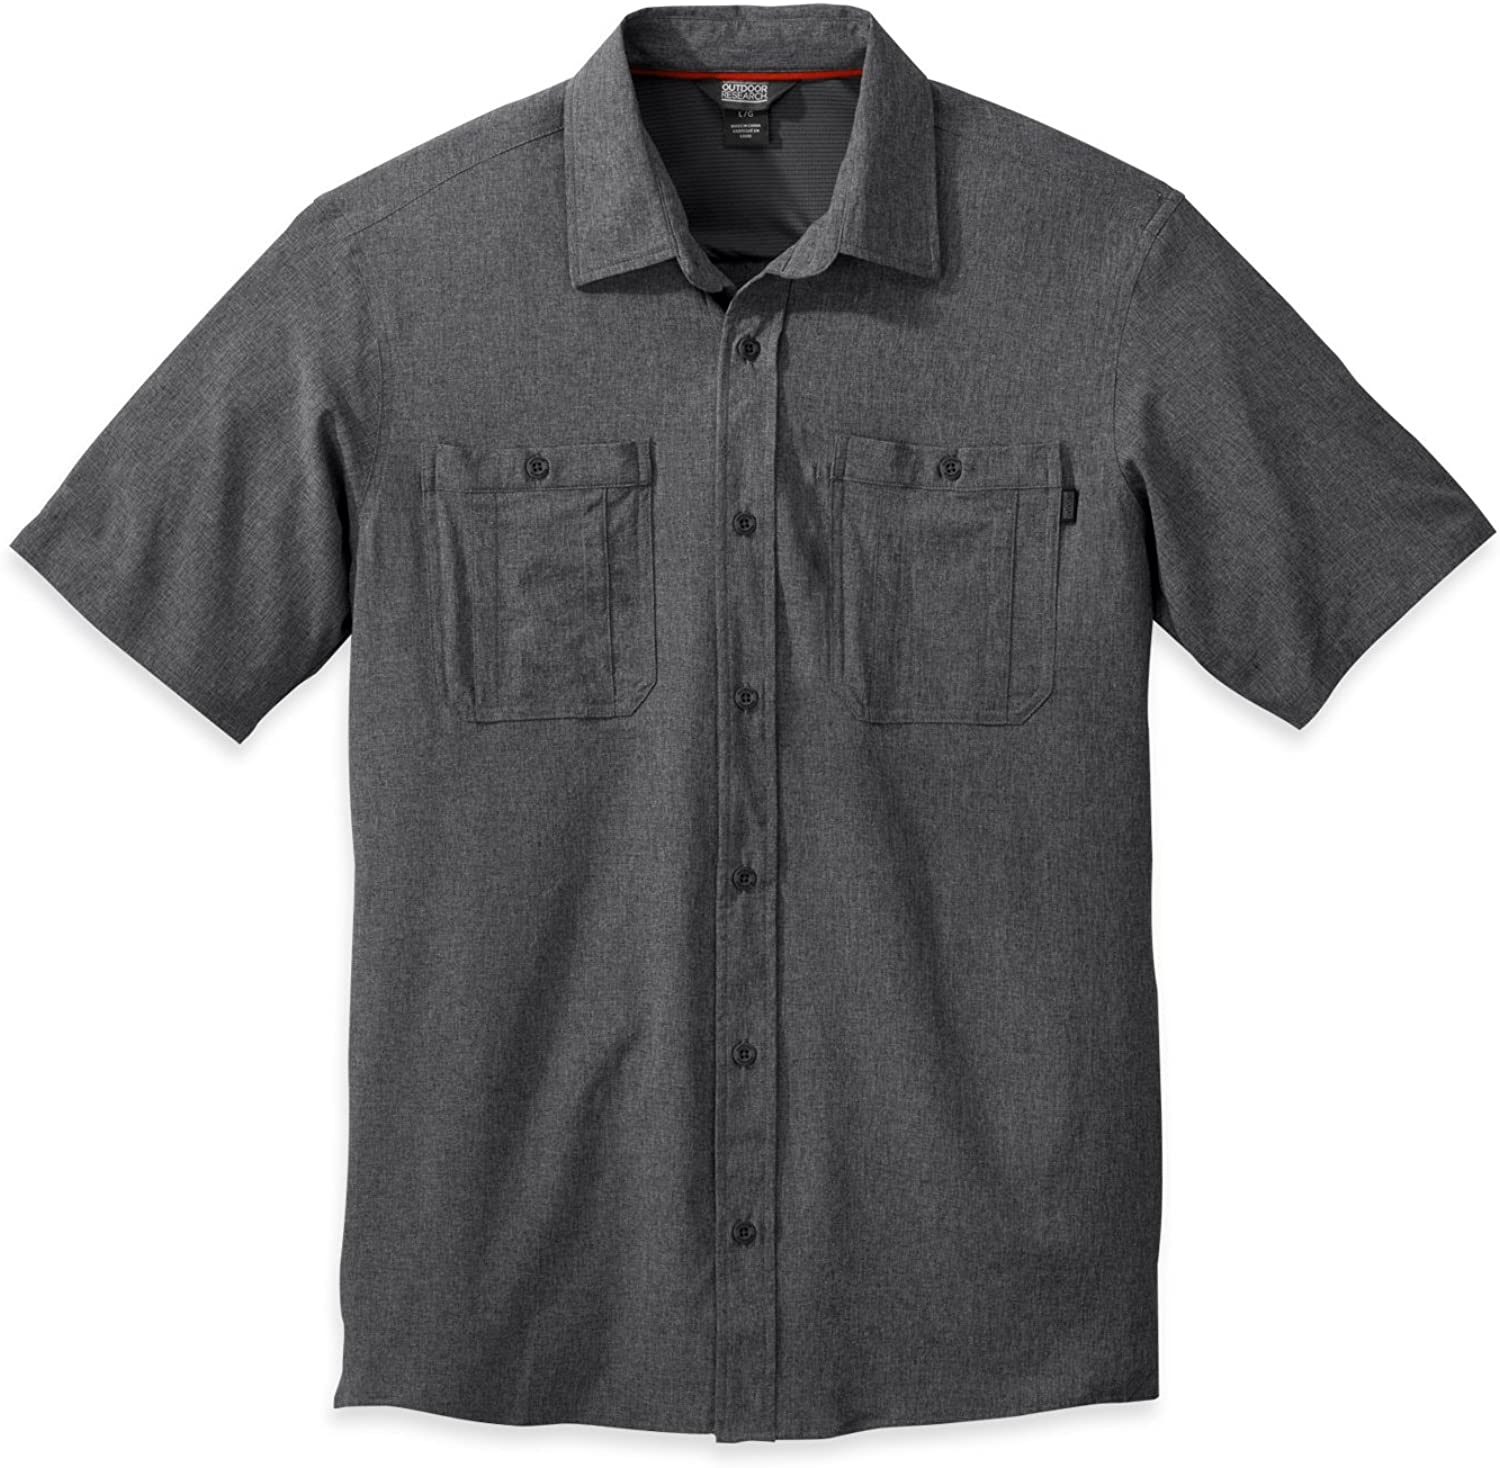 Outdoor Research Men's Wayward S S Shirt, Charcoal, Medium